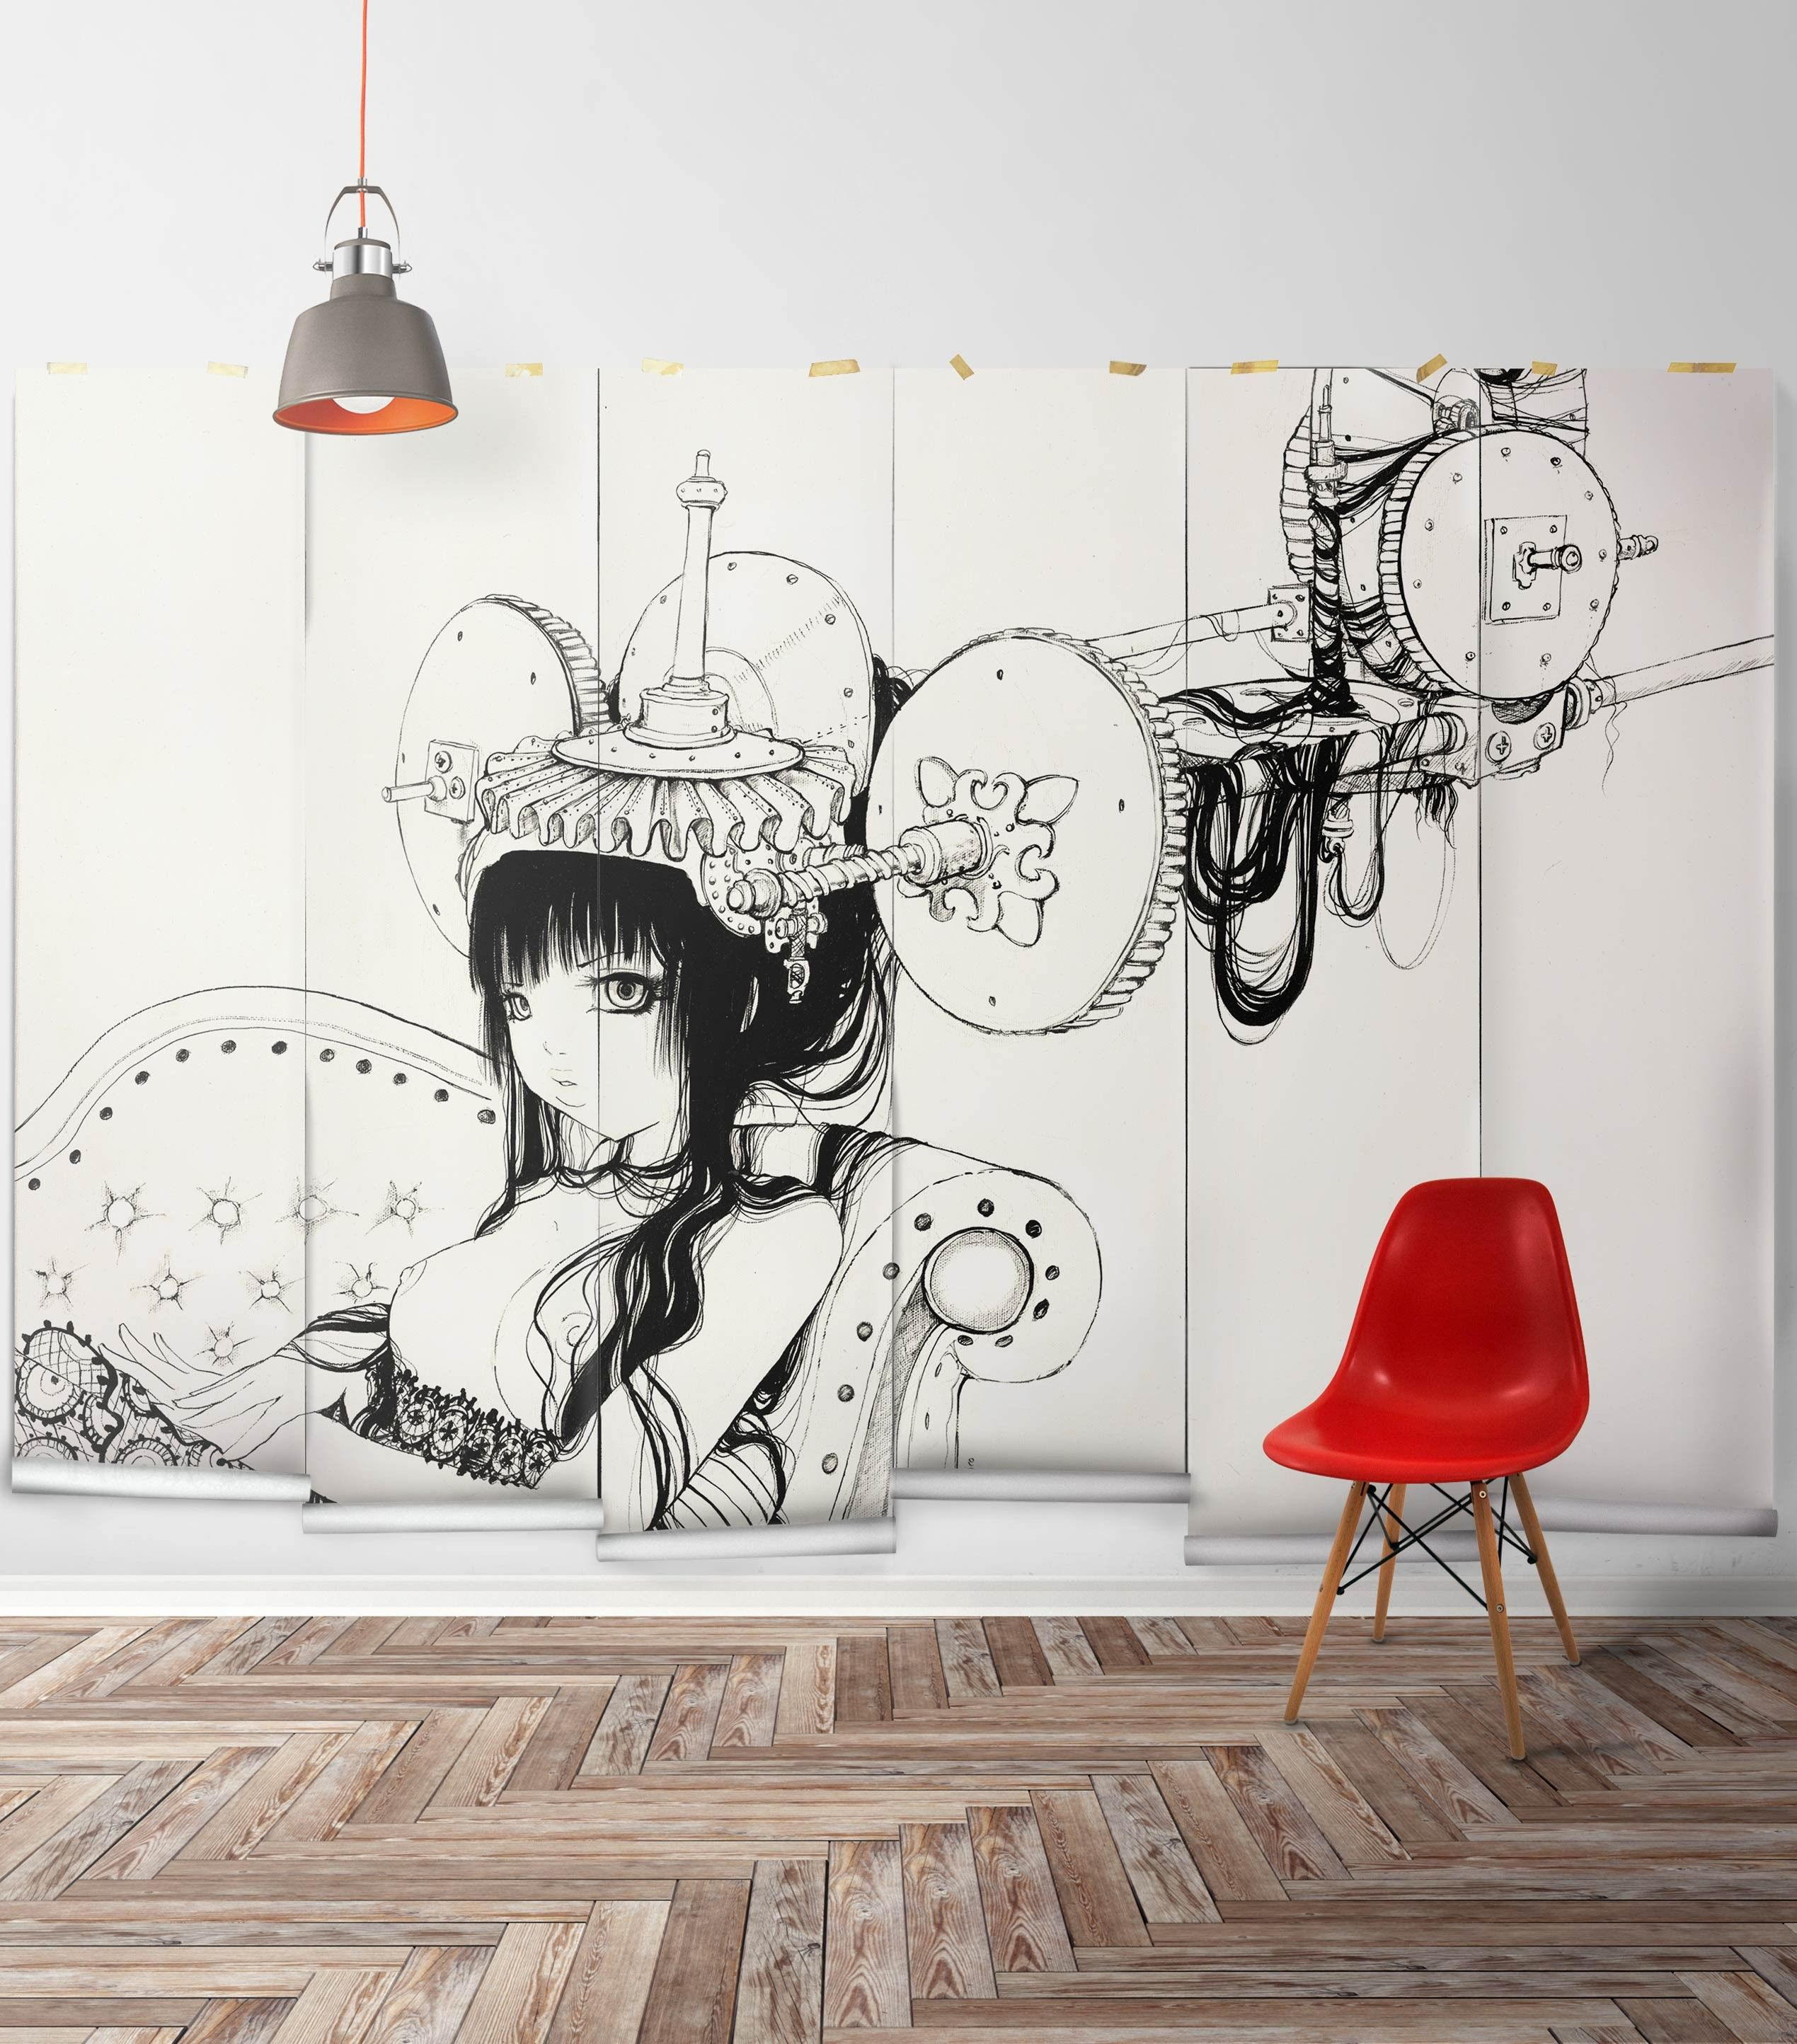 Forge Machine Wall Mural By Camilla Derrico - Wallpaper Republic